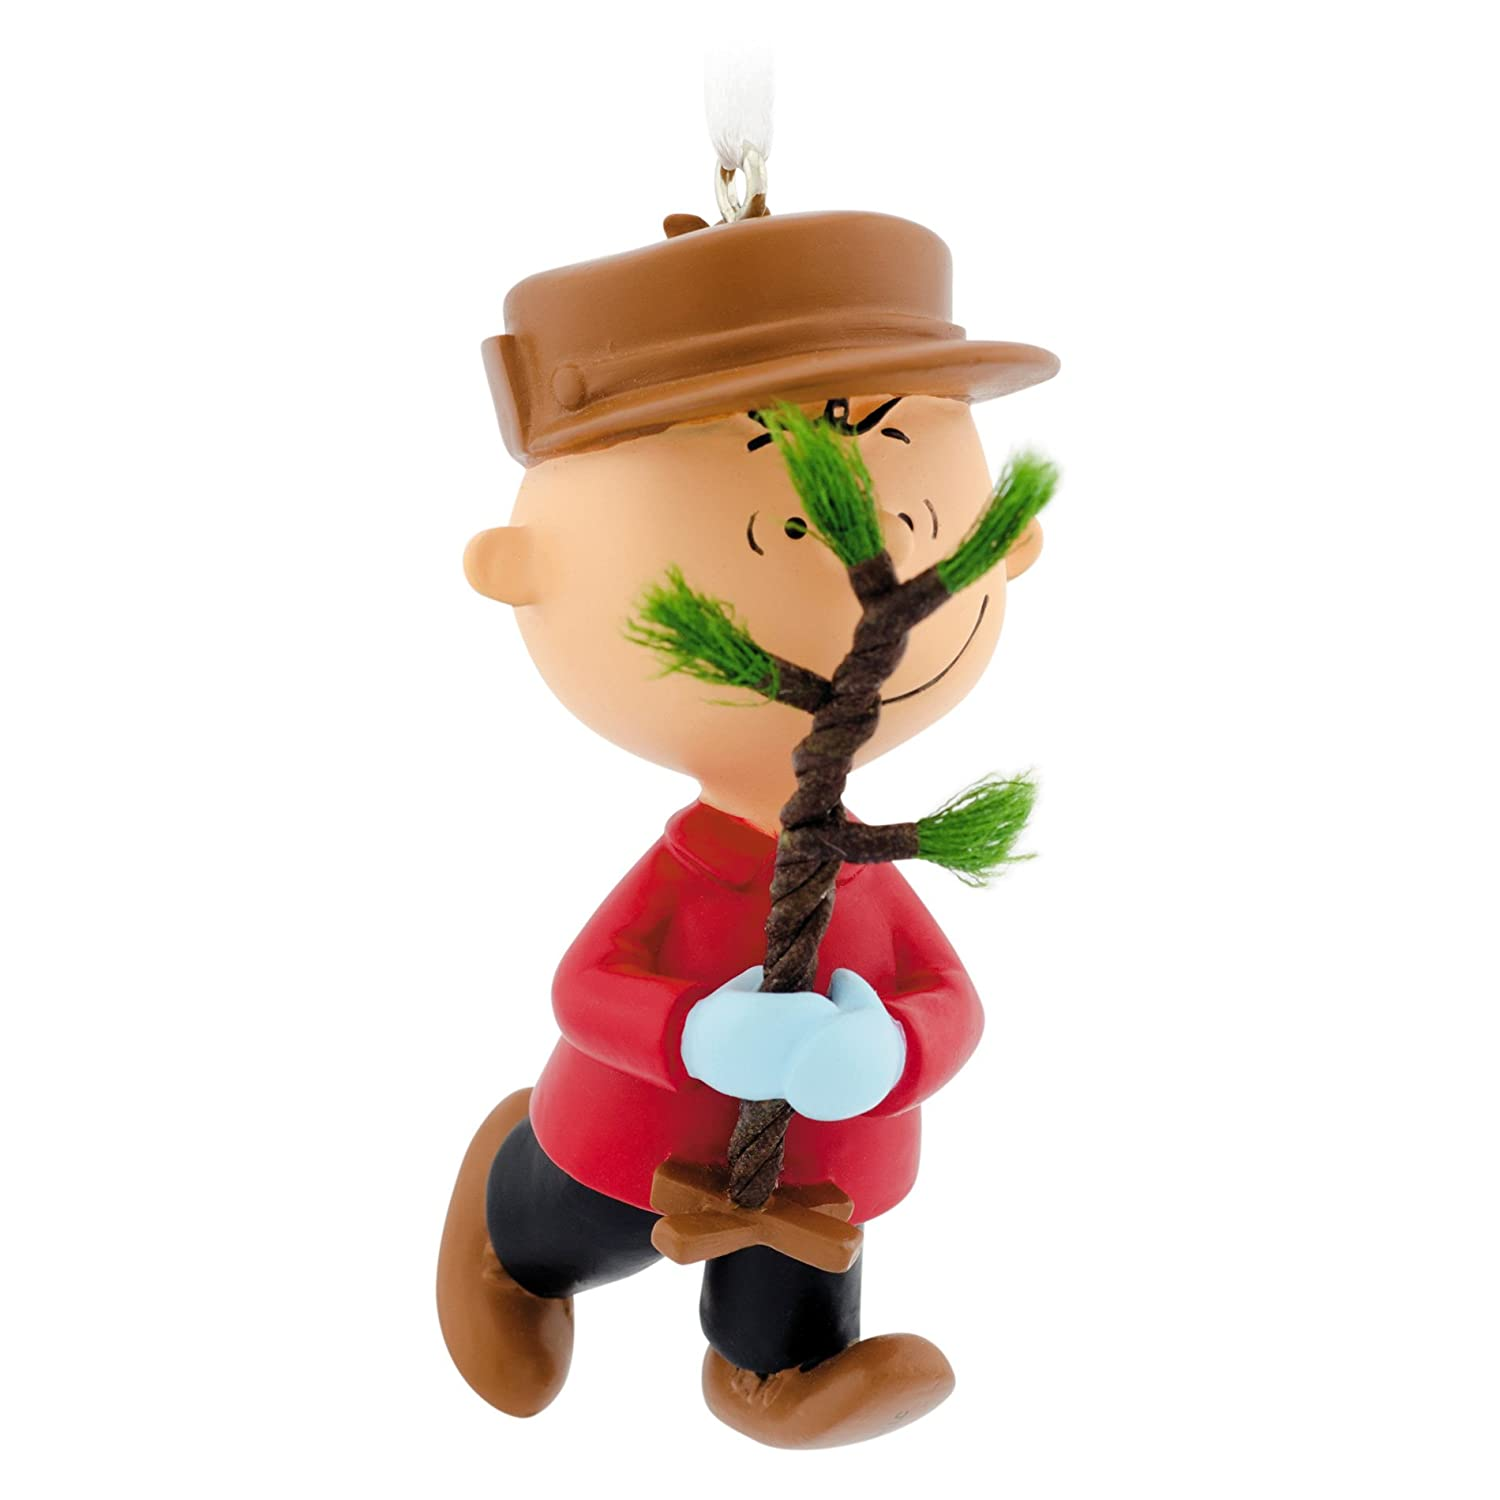 amazoncom hallmark peanuts charlie brown with tree christmas ornament home kitchen - Hallmark Christmas Decorations